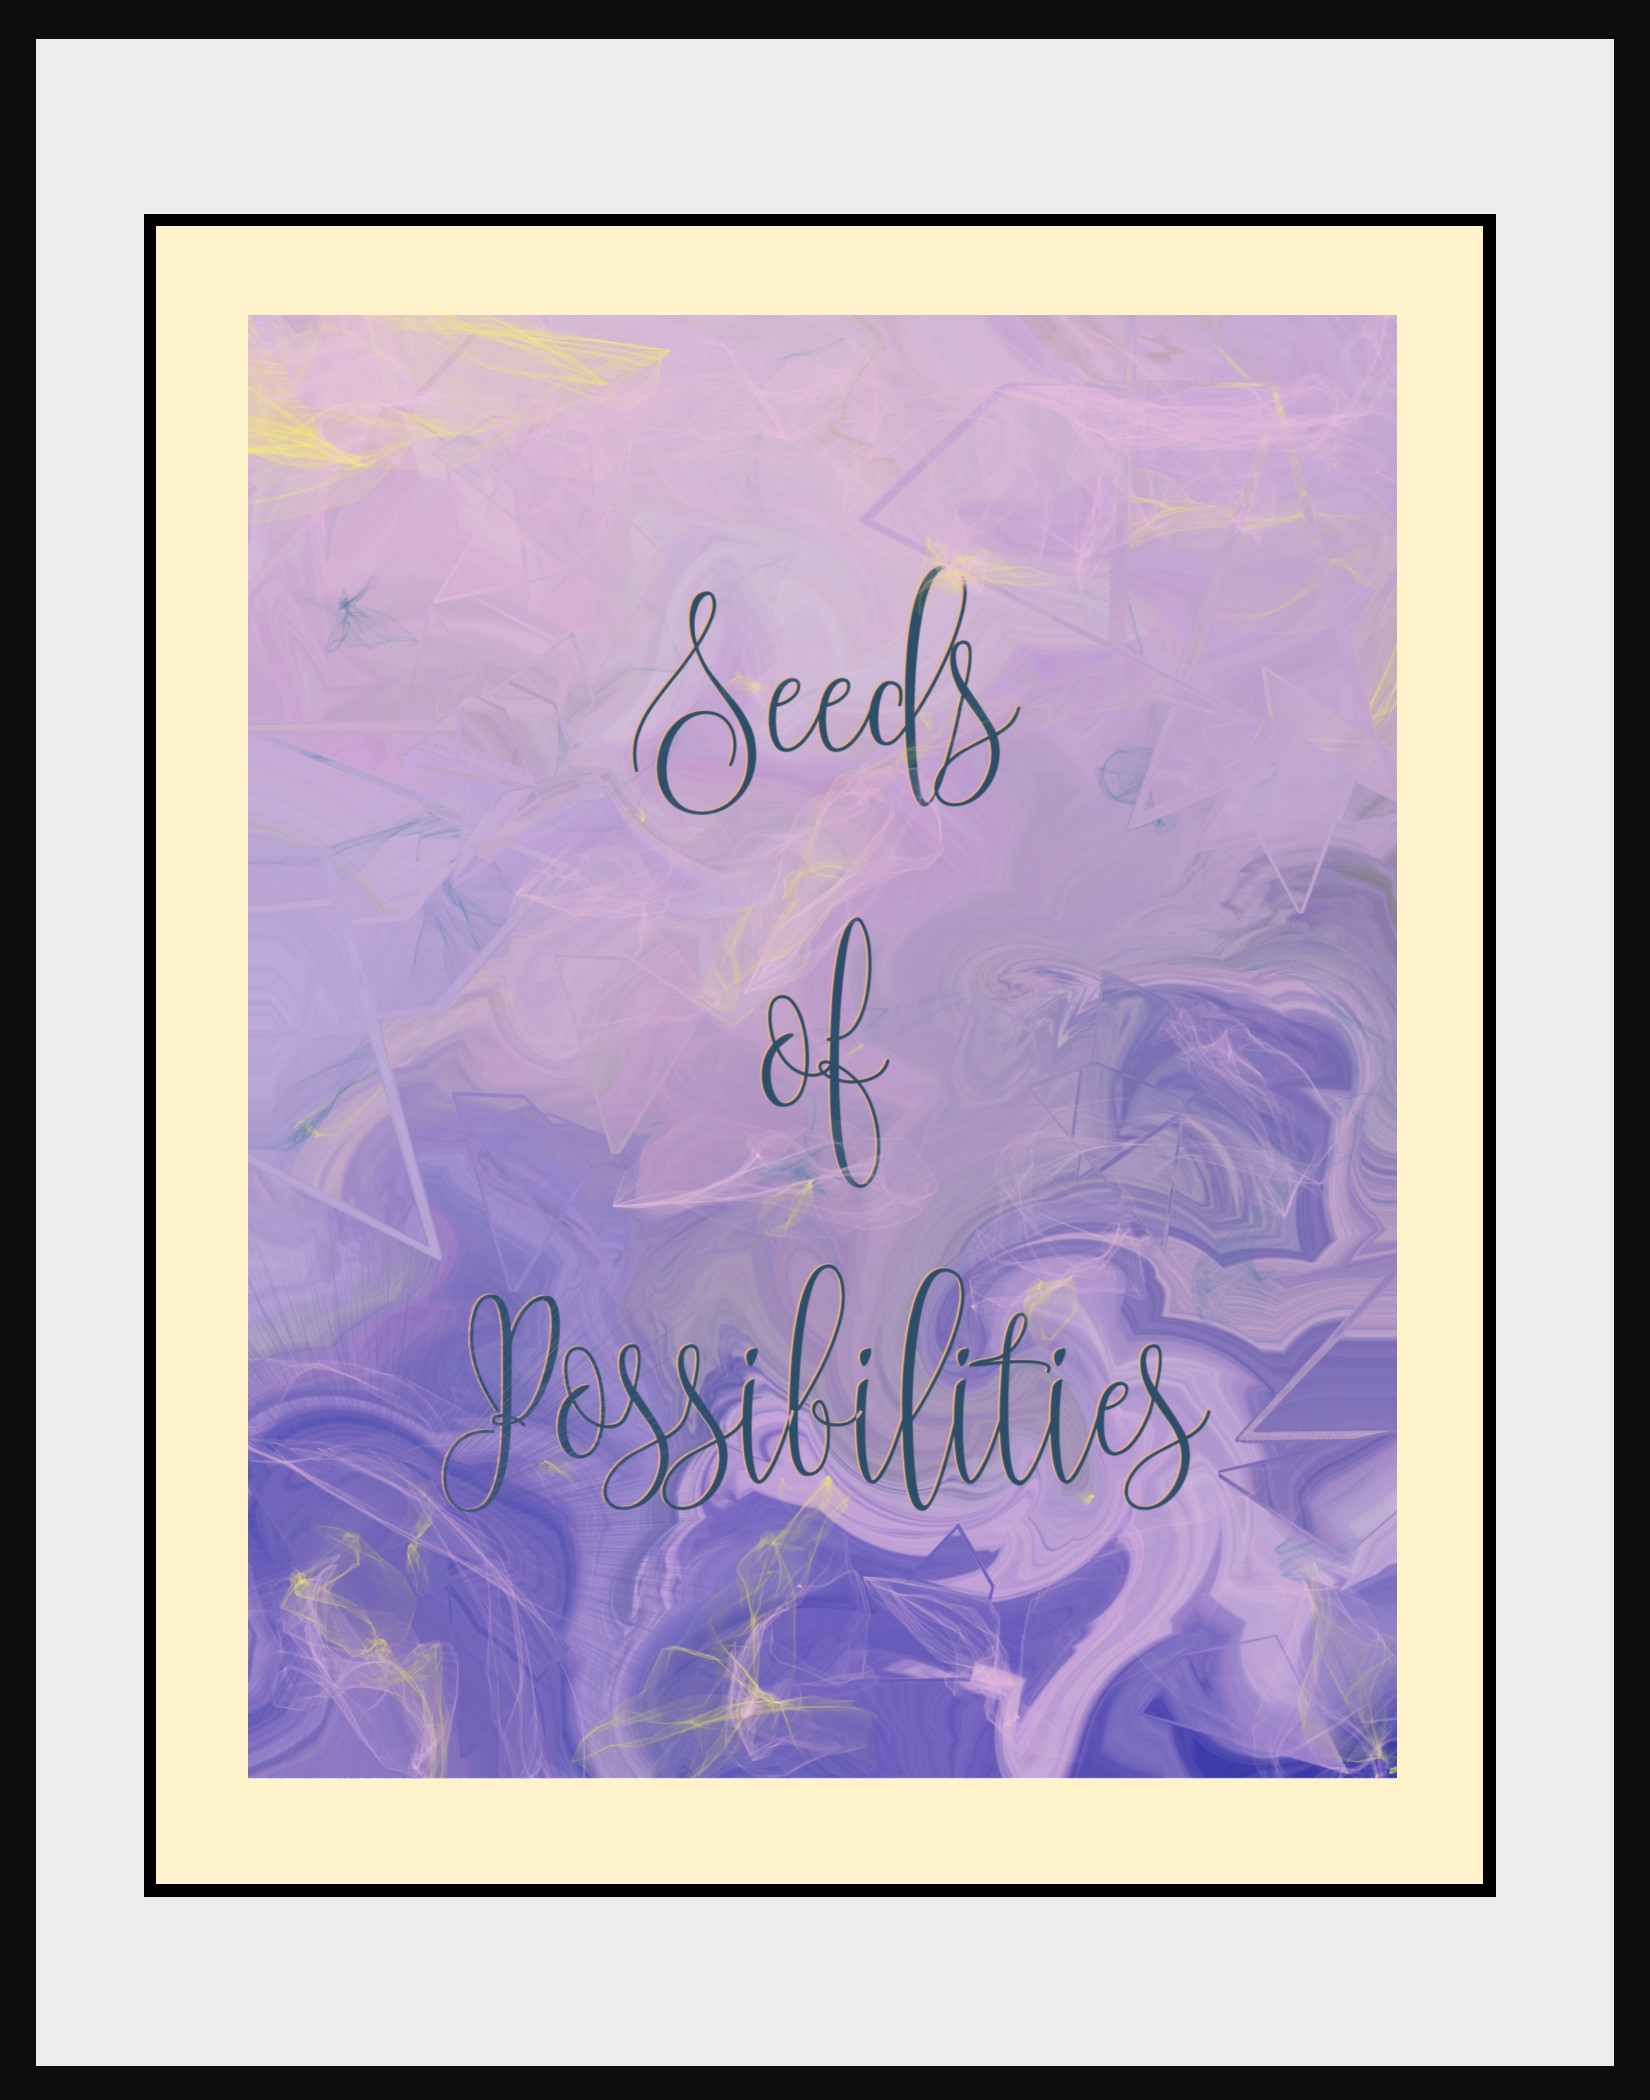 Seeds of Possibilites Instant Download